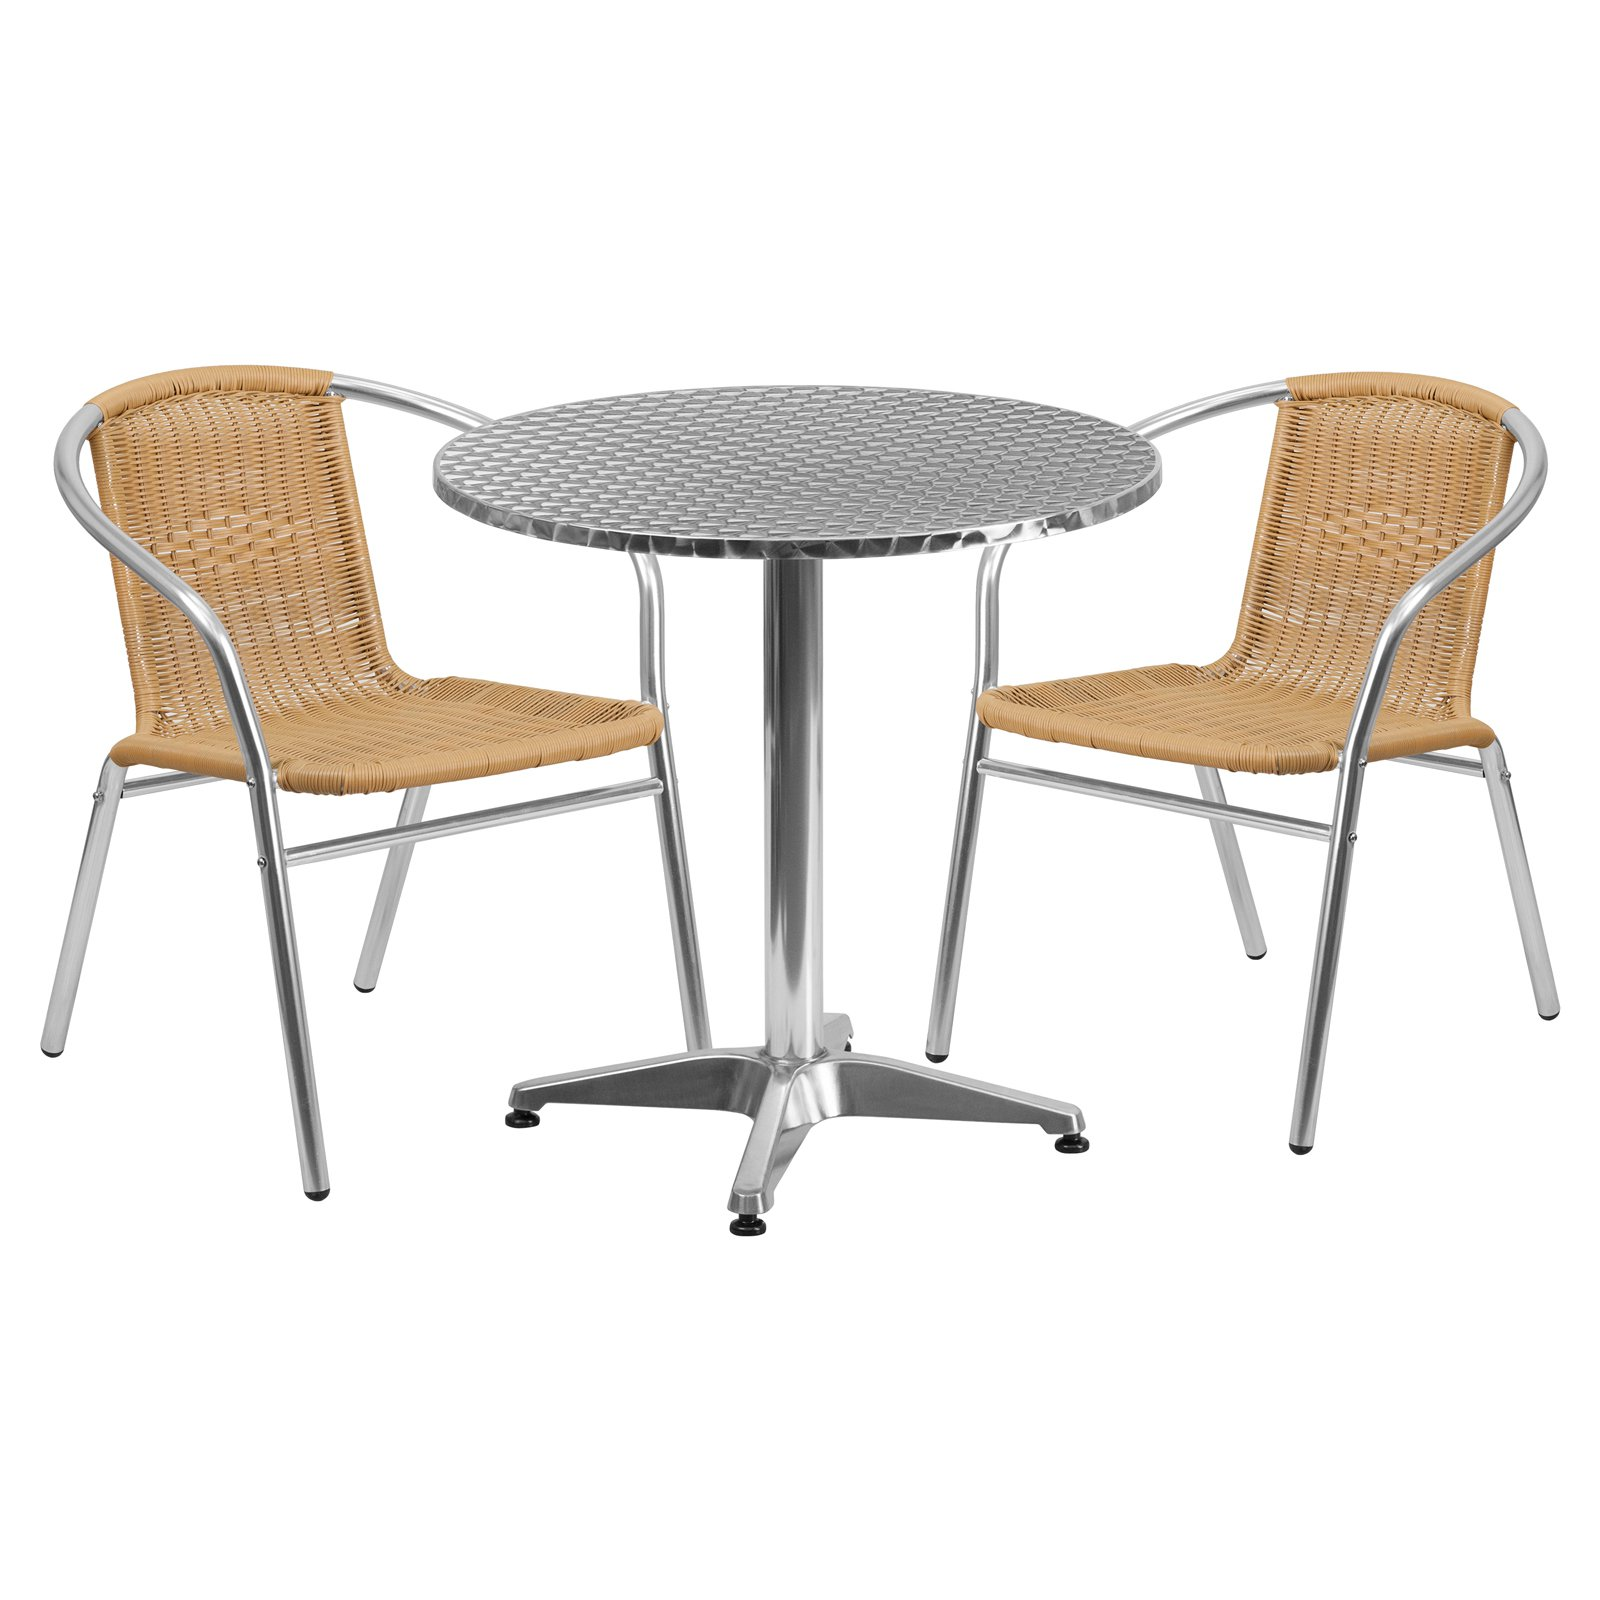 Rattan Chairs Flash Furniture 27 5 Round Aluminum Indoor Outdoor Table With 2 Rattan Chairs Multiple Colors